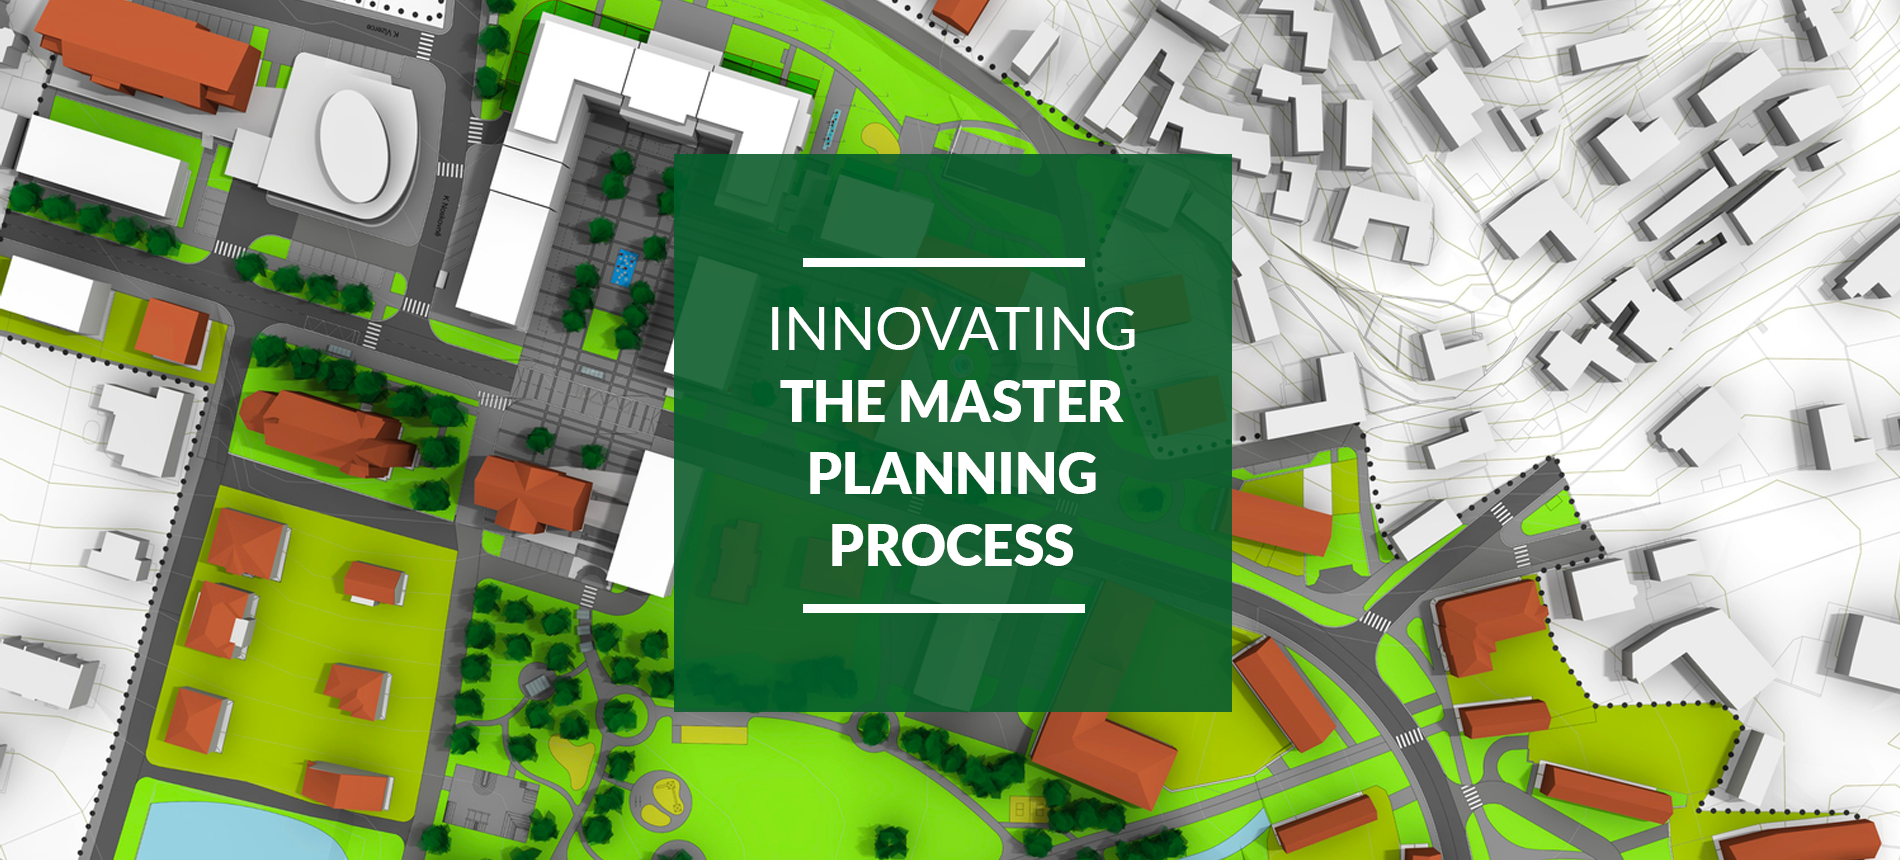 Innovating-the-Master-Planning-Process3